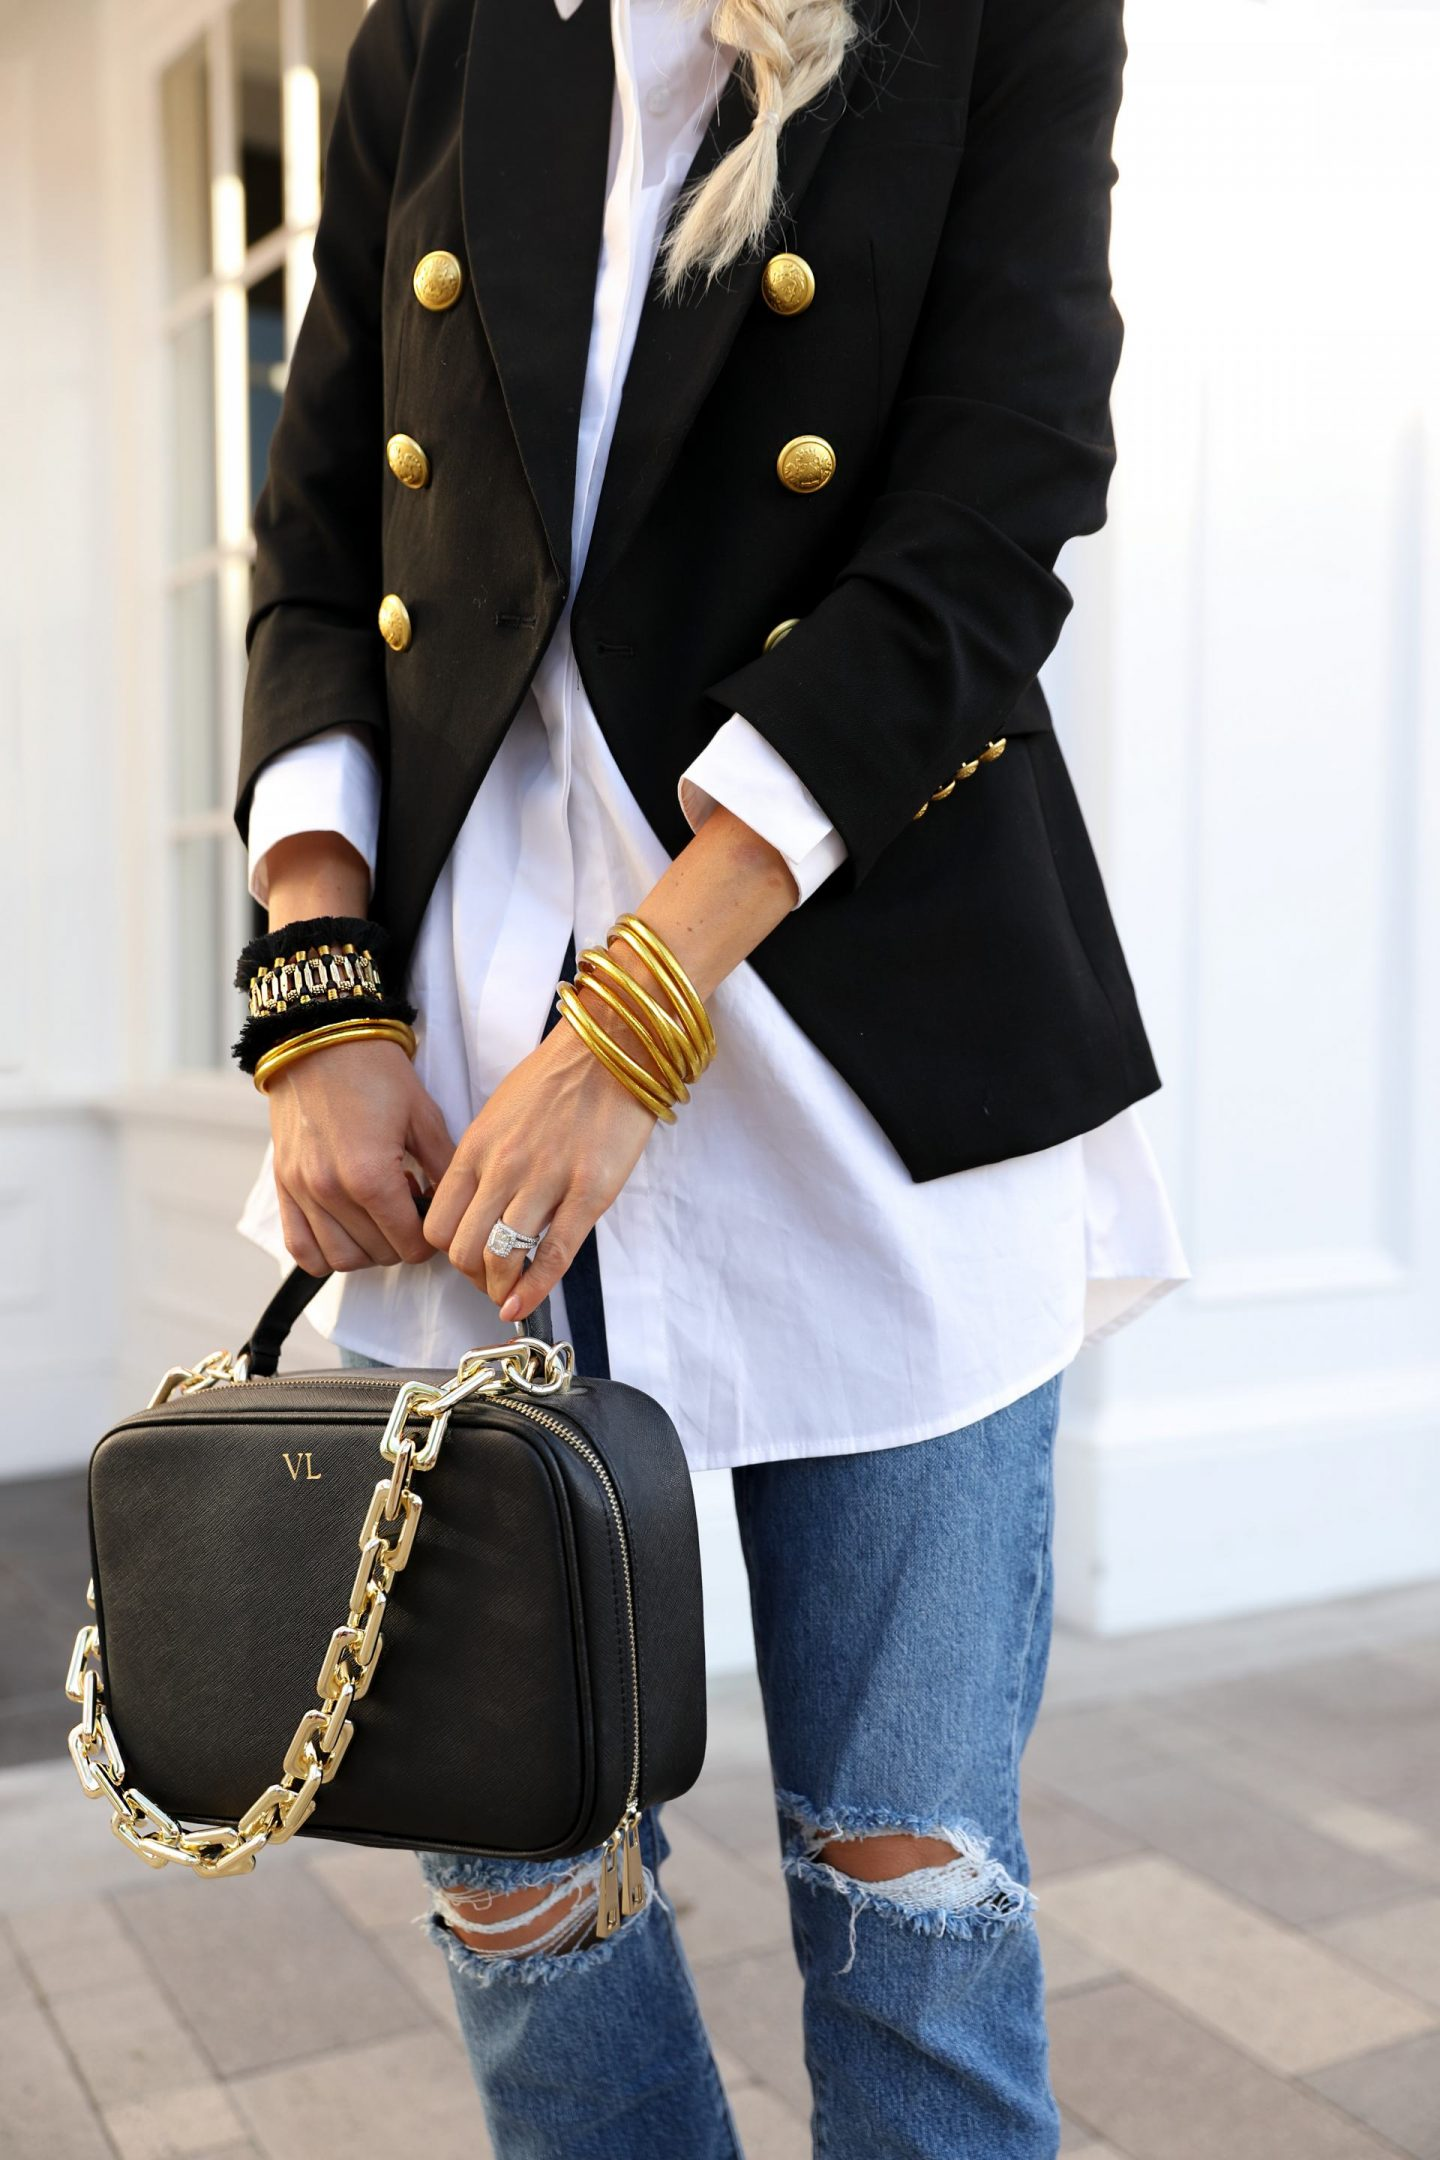 Express black gold button blazer casual chic style with budha girl bracelets, feminine style by fashion blogger Lombard & Fifth.